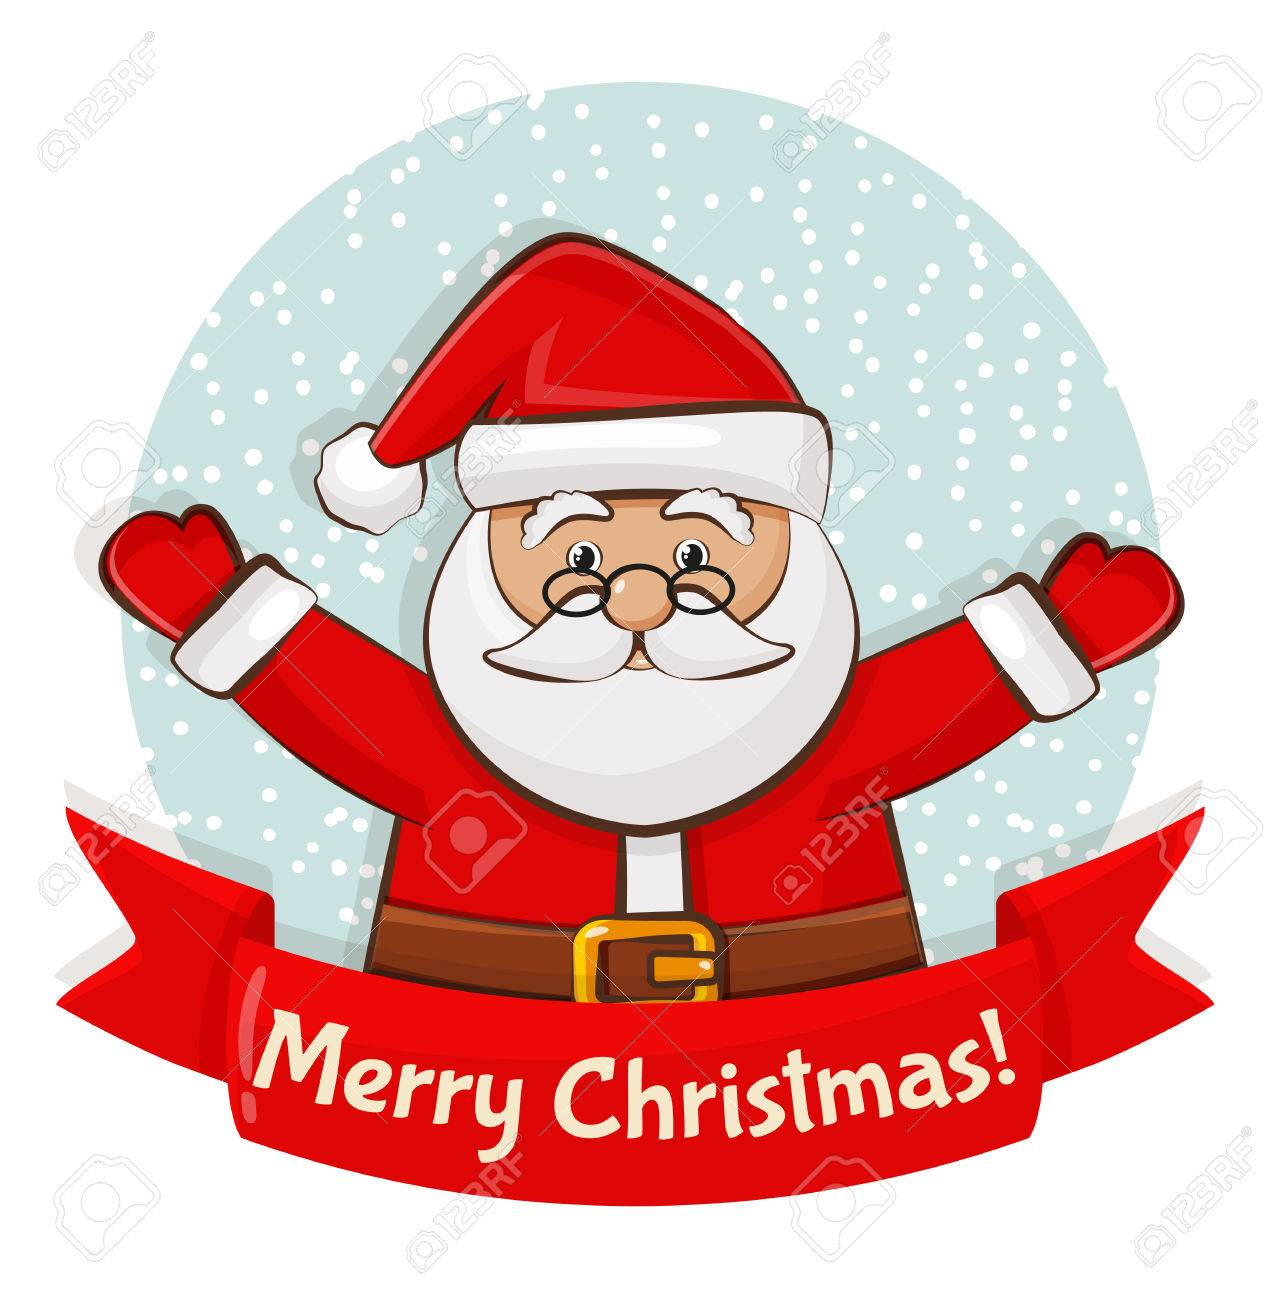 Merry Christmas Greeting Card With Santa Claus Vector Illustration